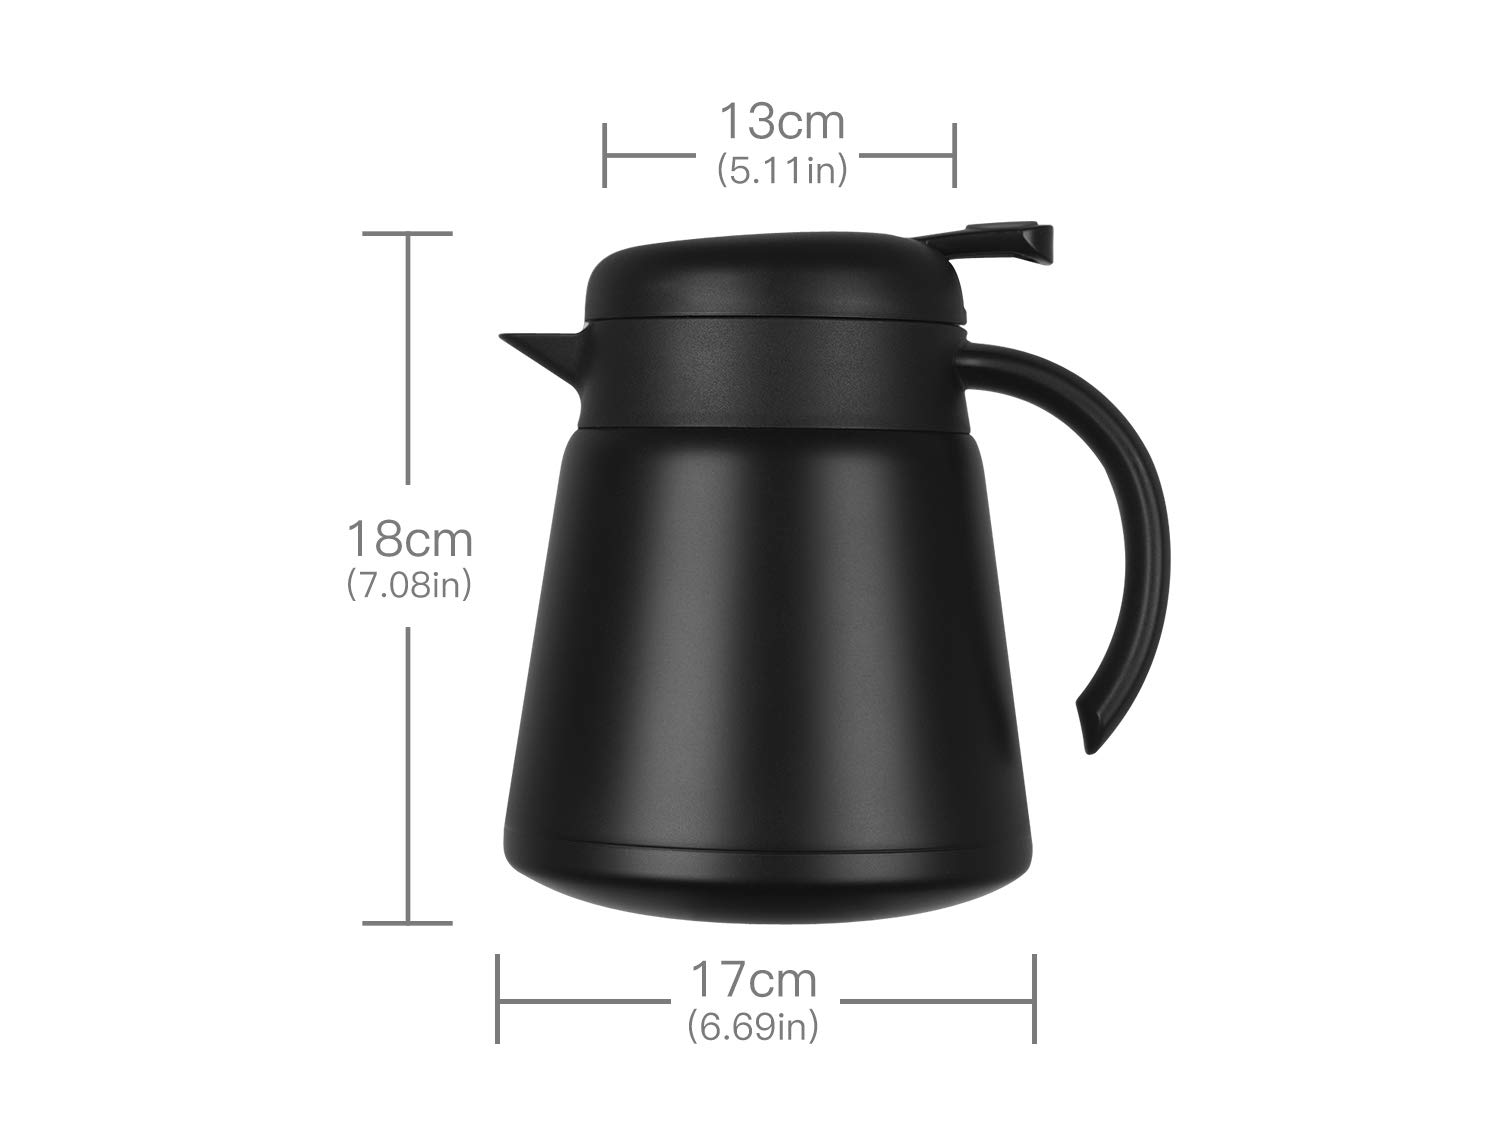 Luvan 304 18/10 Stainless Steel Thermal Carafe/Double Walled Vacuum Insulated Coffee Pot with Press Button Top,24+ Hrs Heat&Cold Retention,BPA Free,for Coffee,Tea,Beverage etc (Black, 27 OZ) by Luvan (Image #7)